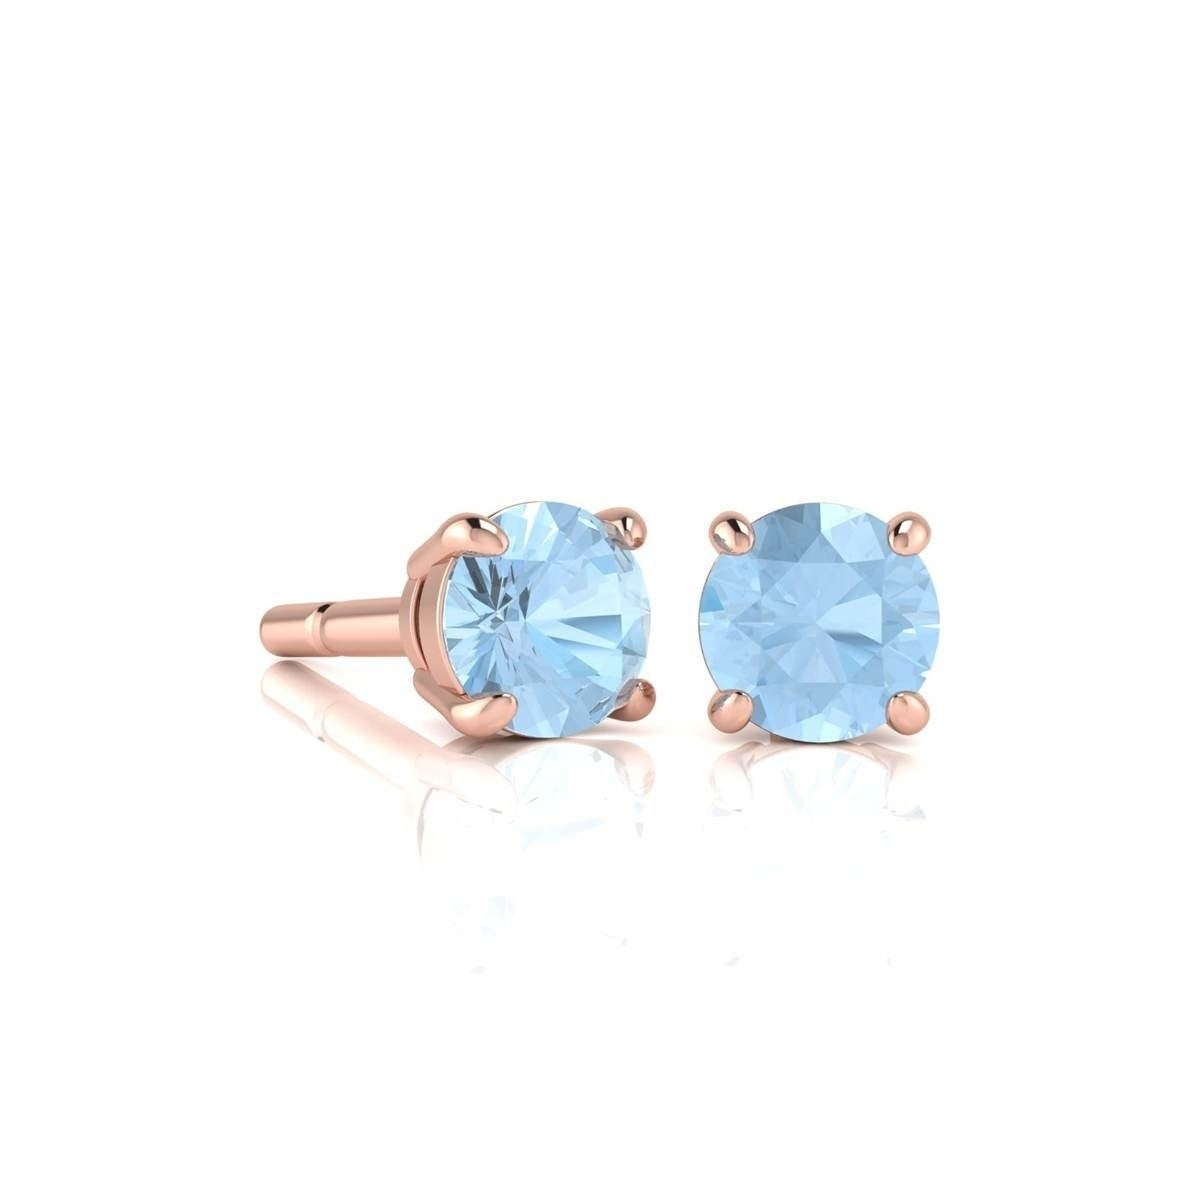 crystal raw il rough aqua aquamarine products fullxfull stone marine earrings quartz stud